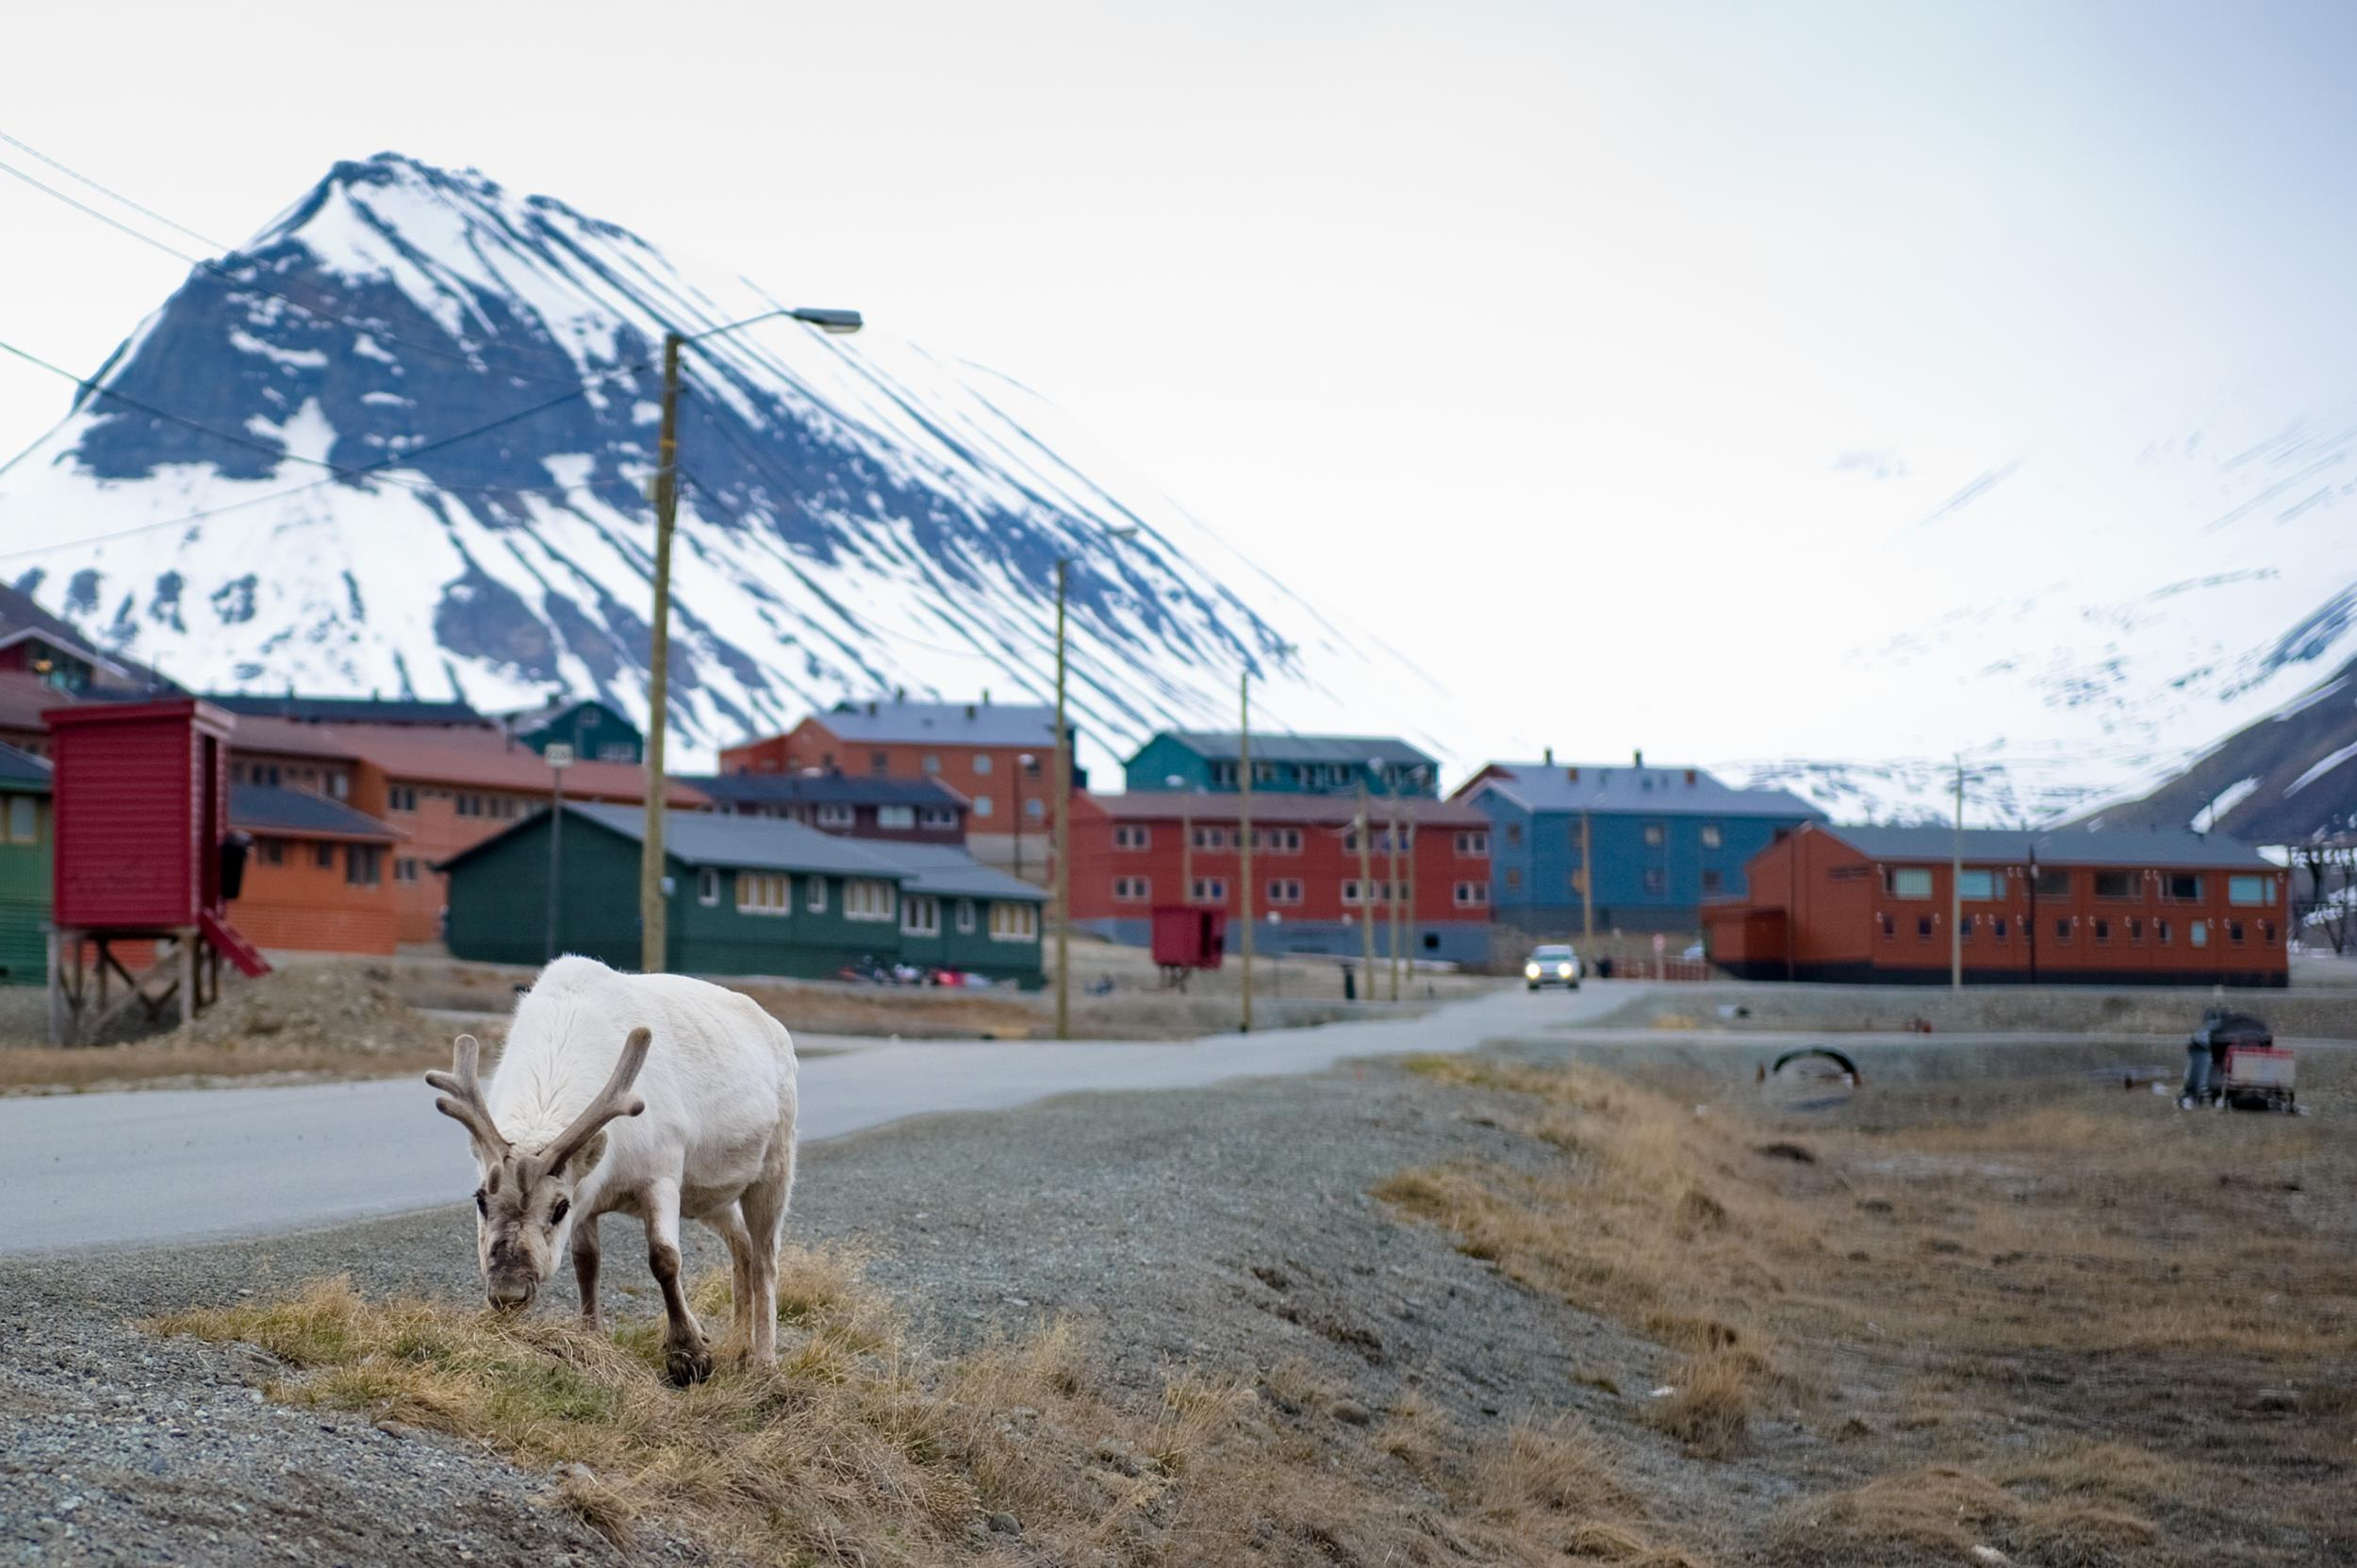 Image: A reindeer eats in the streets of Norway